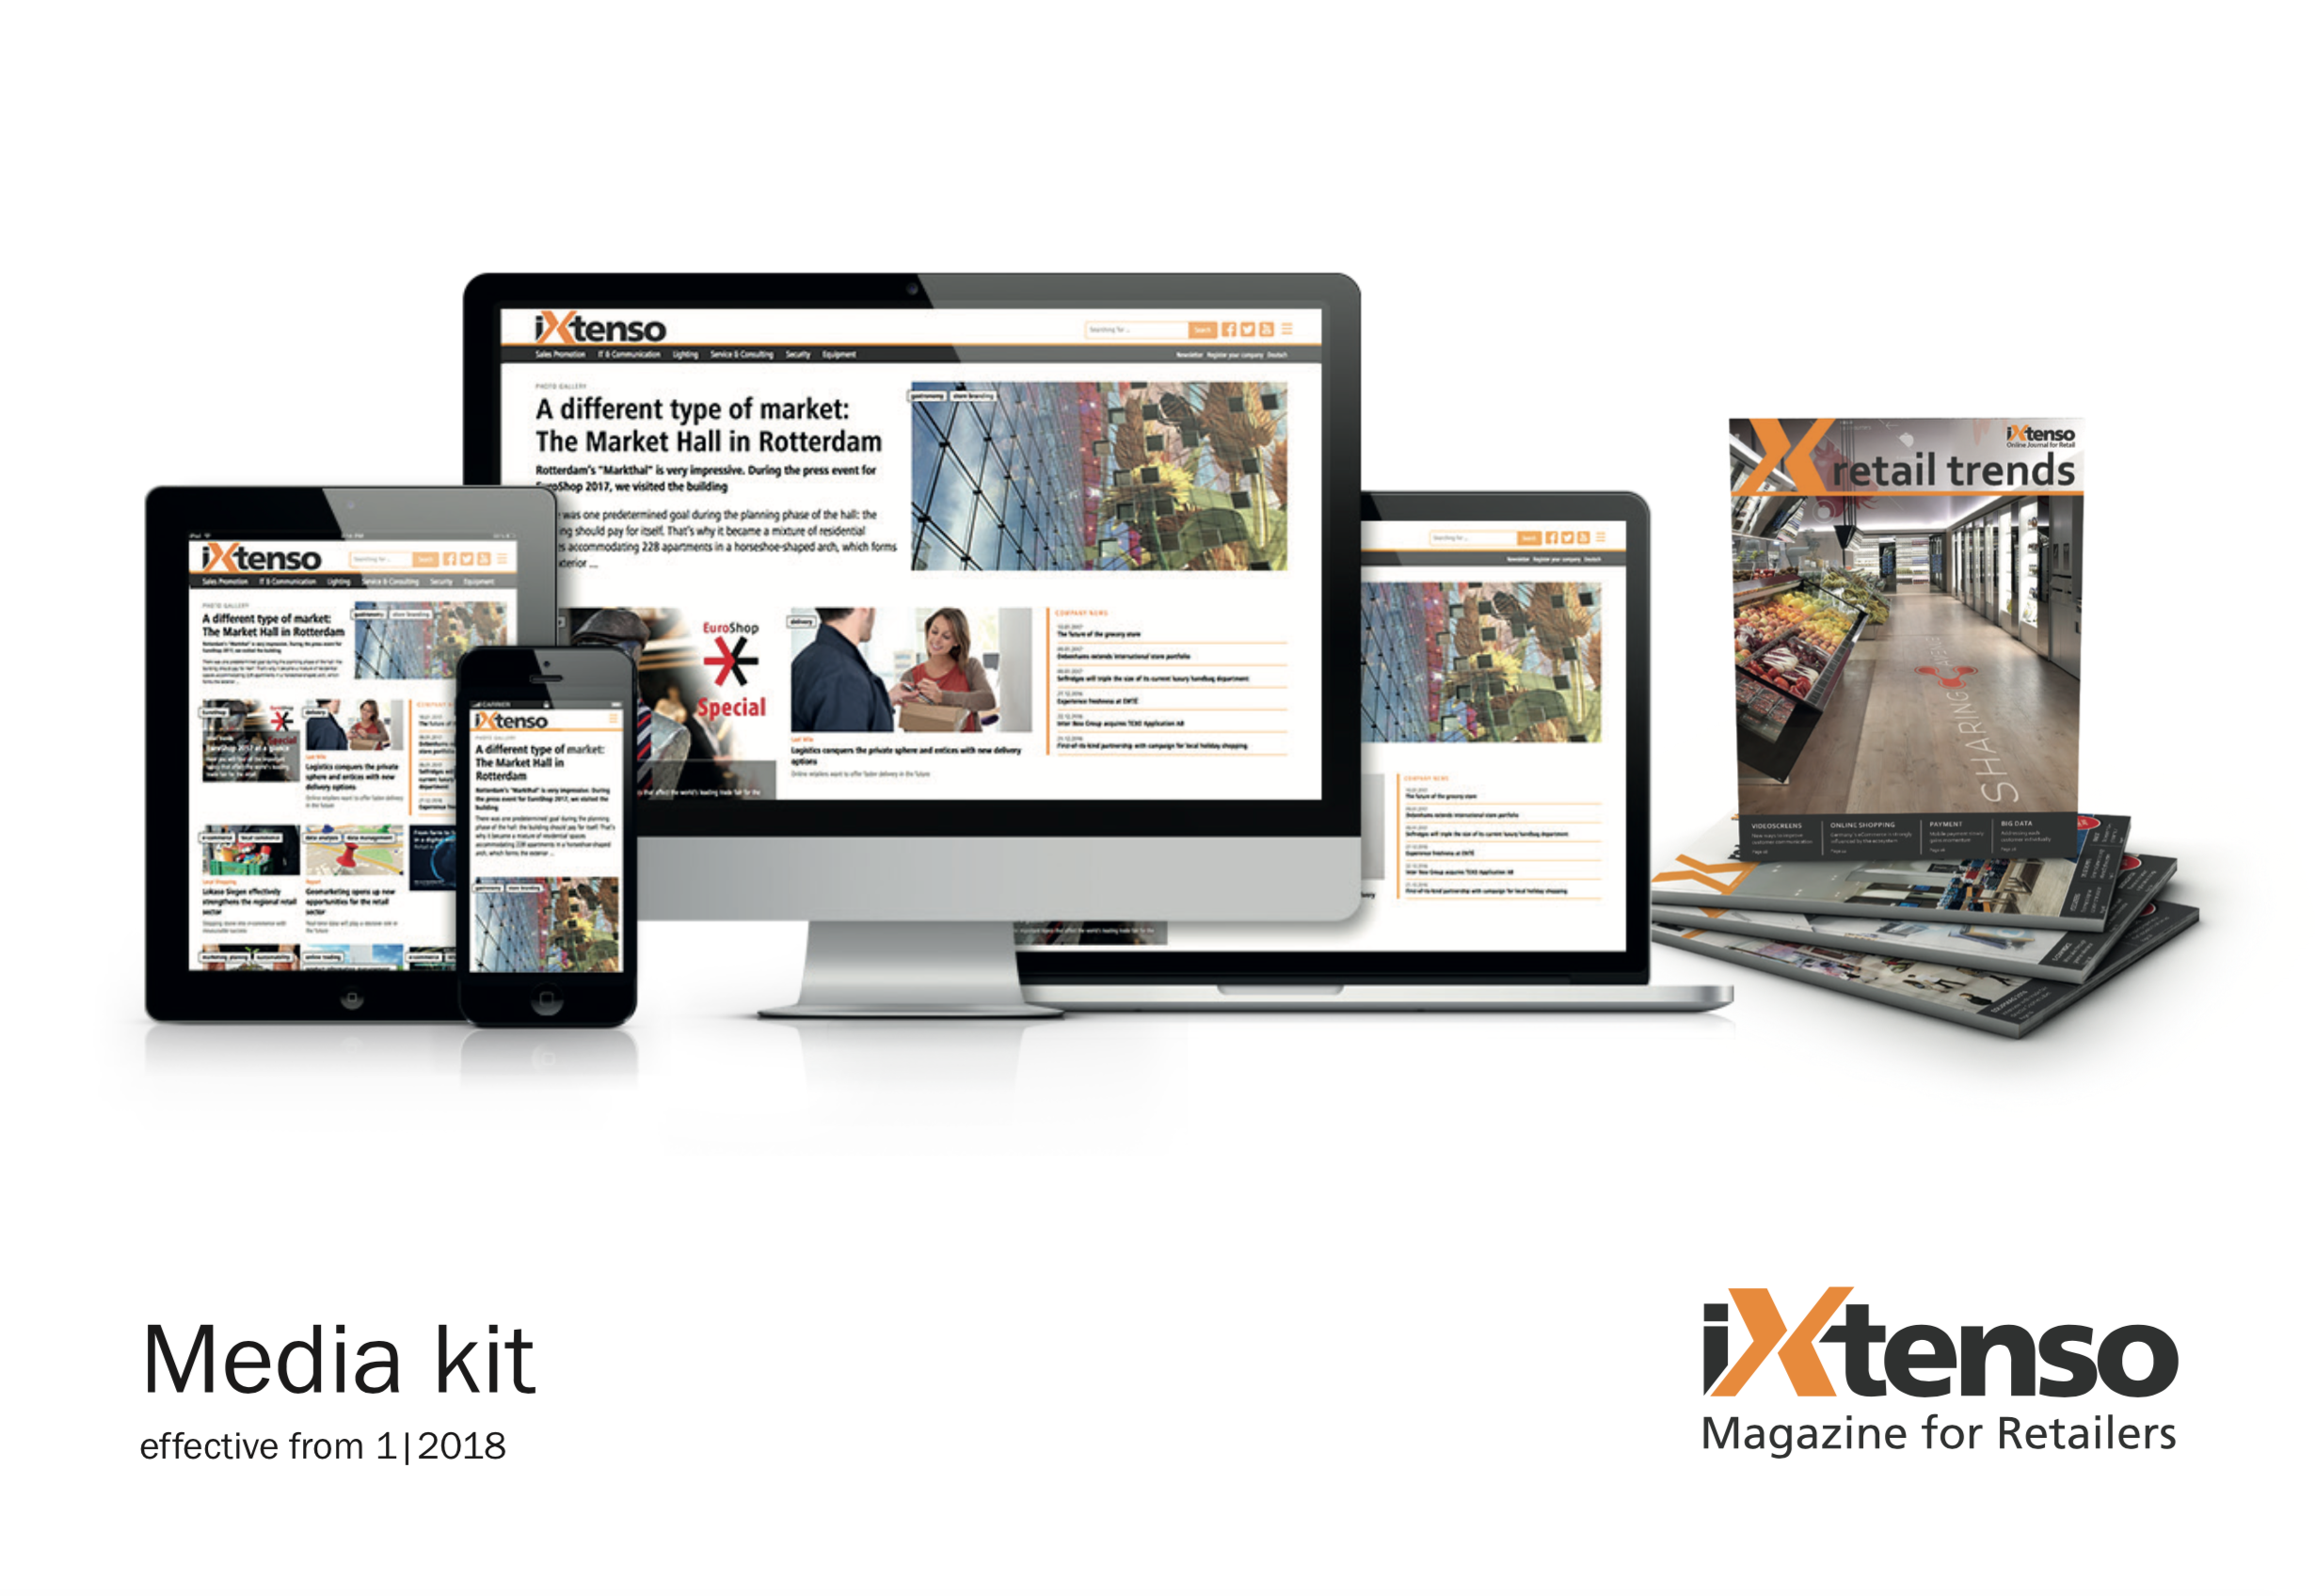 Media Kit iXtenso Mediadaten 2018